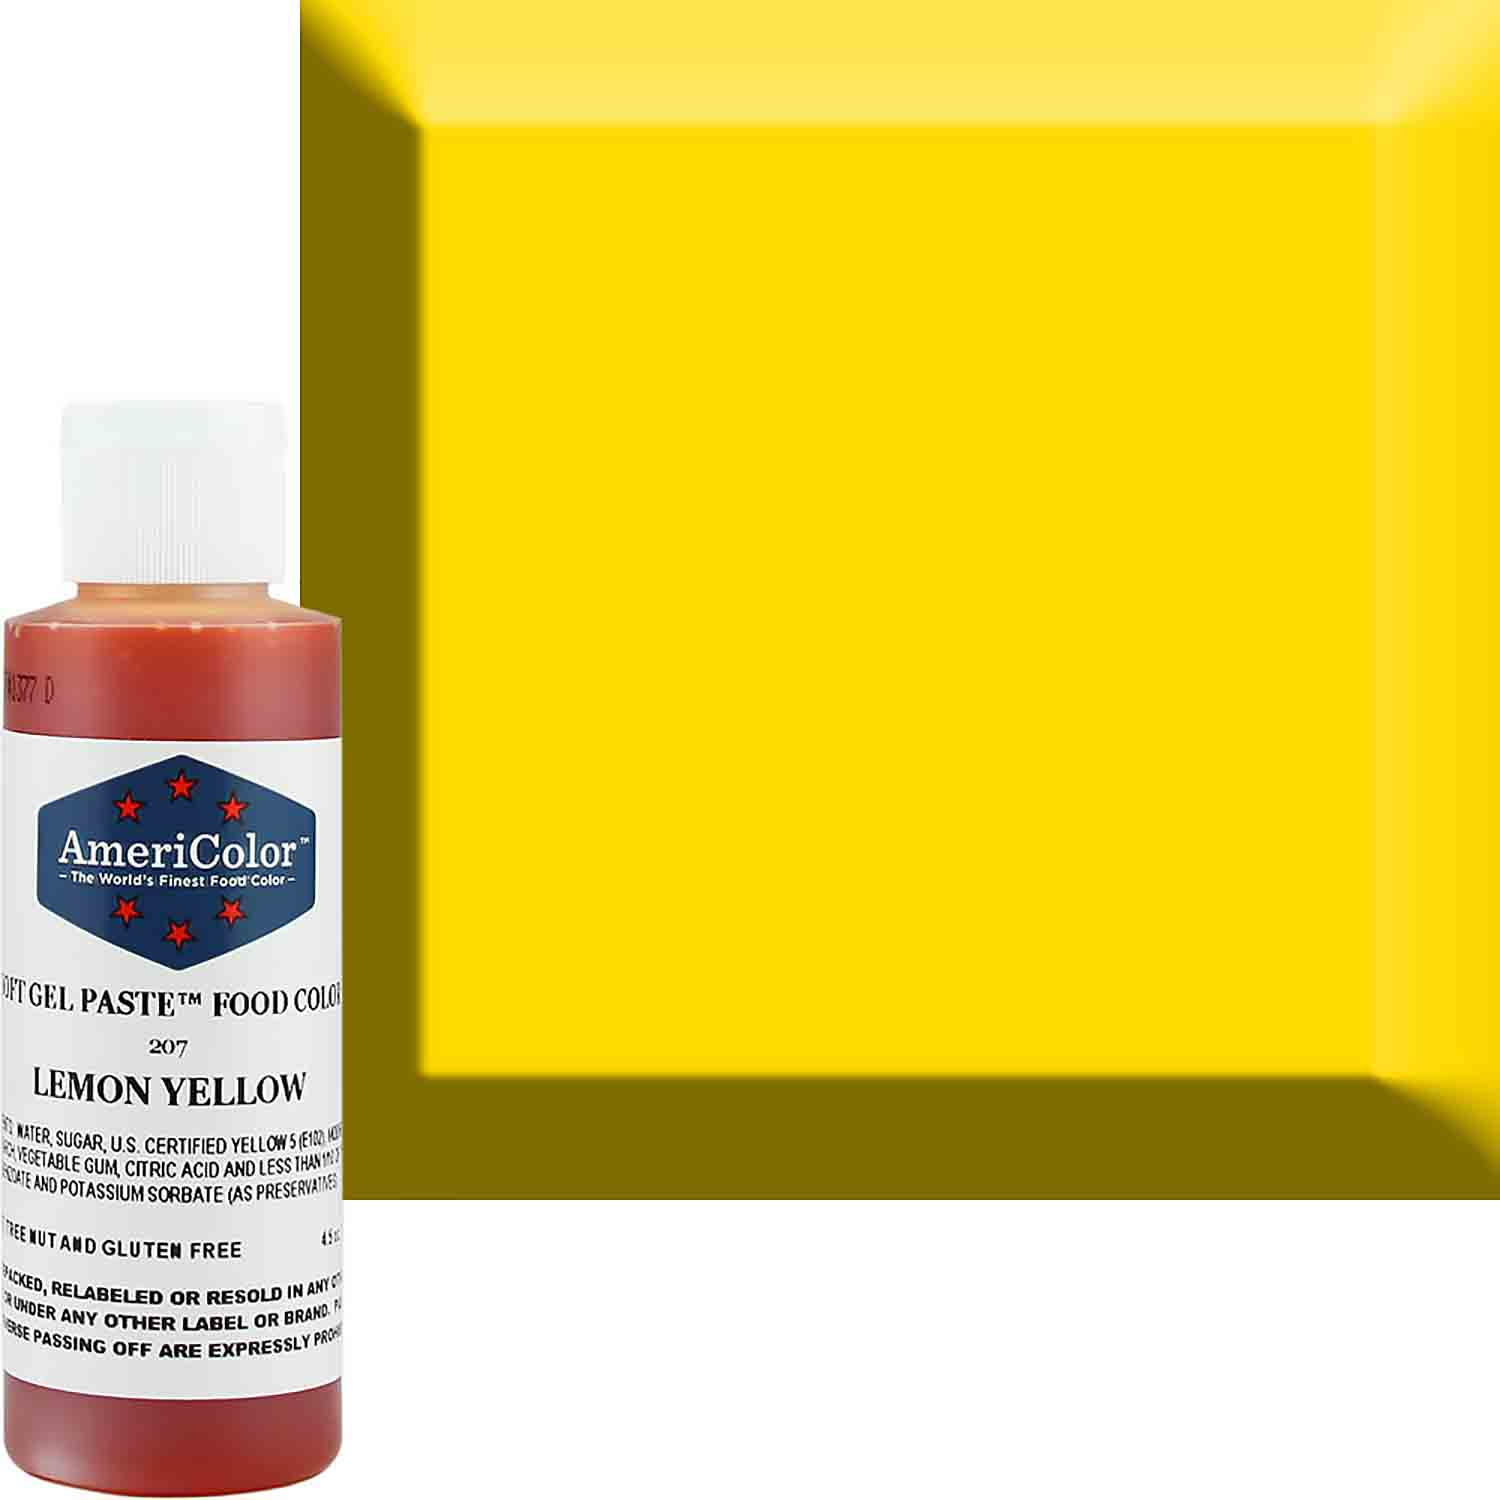 Lemon Yellow Soft Gel Paste™ Food Color